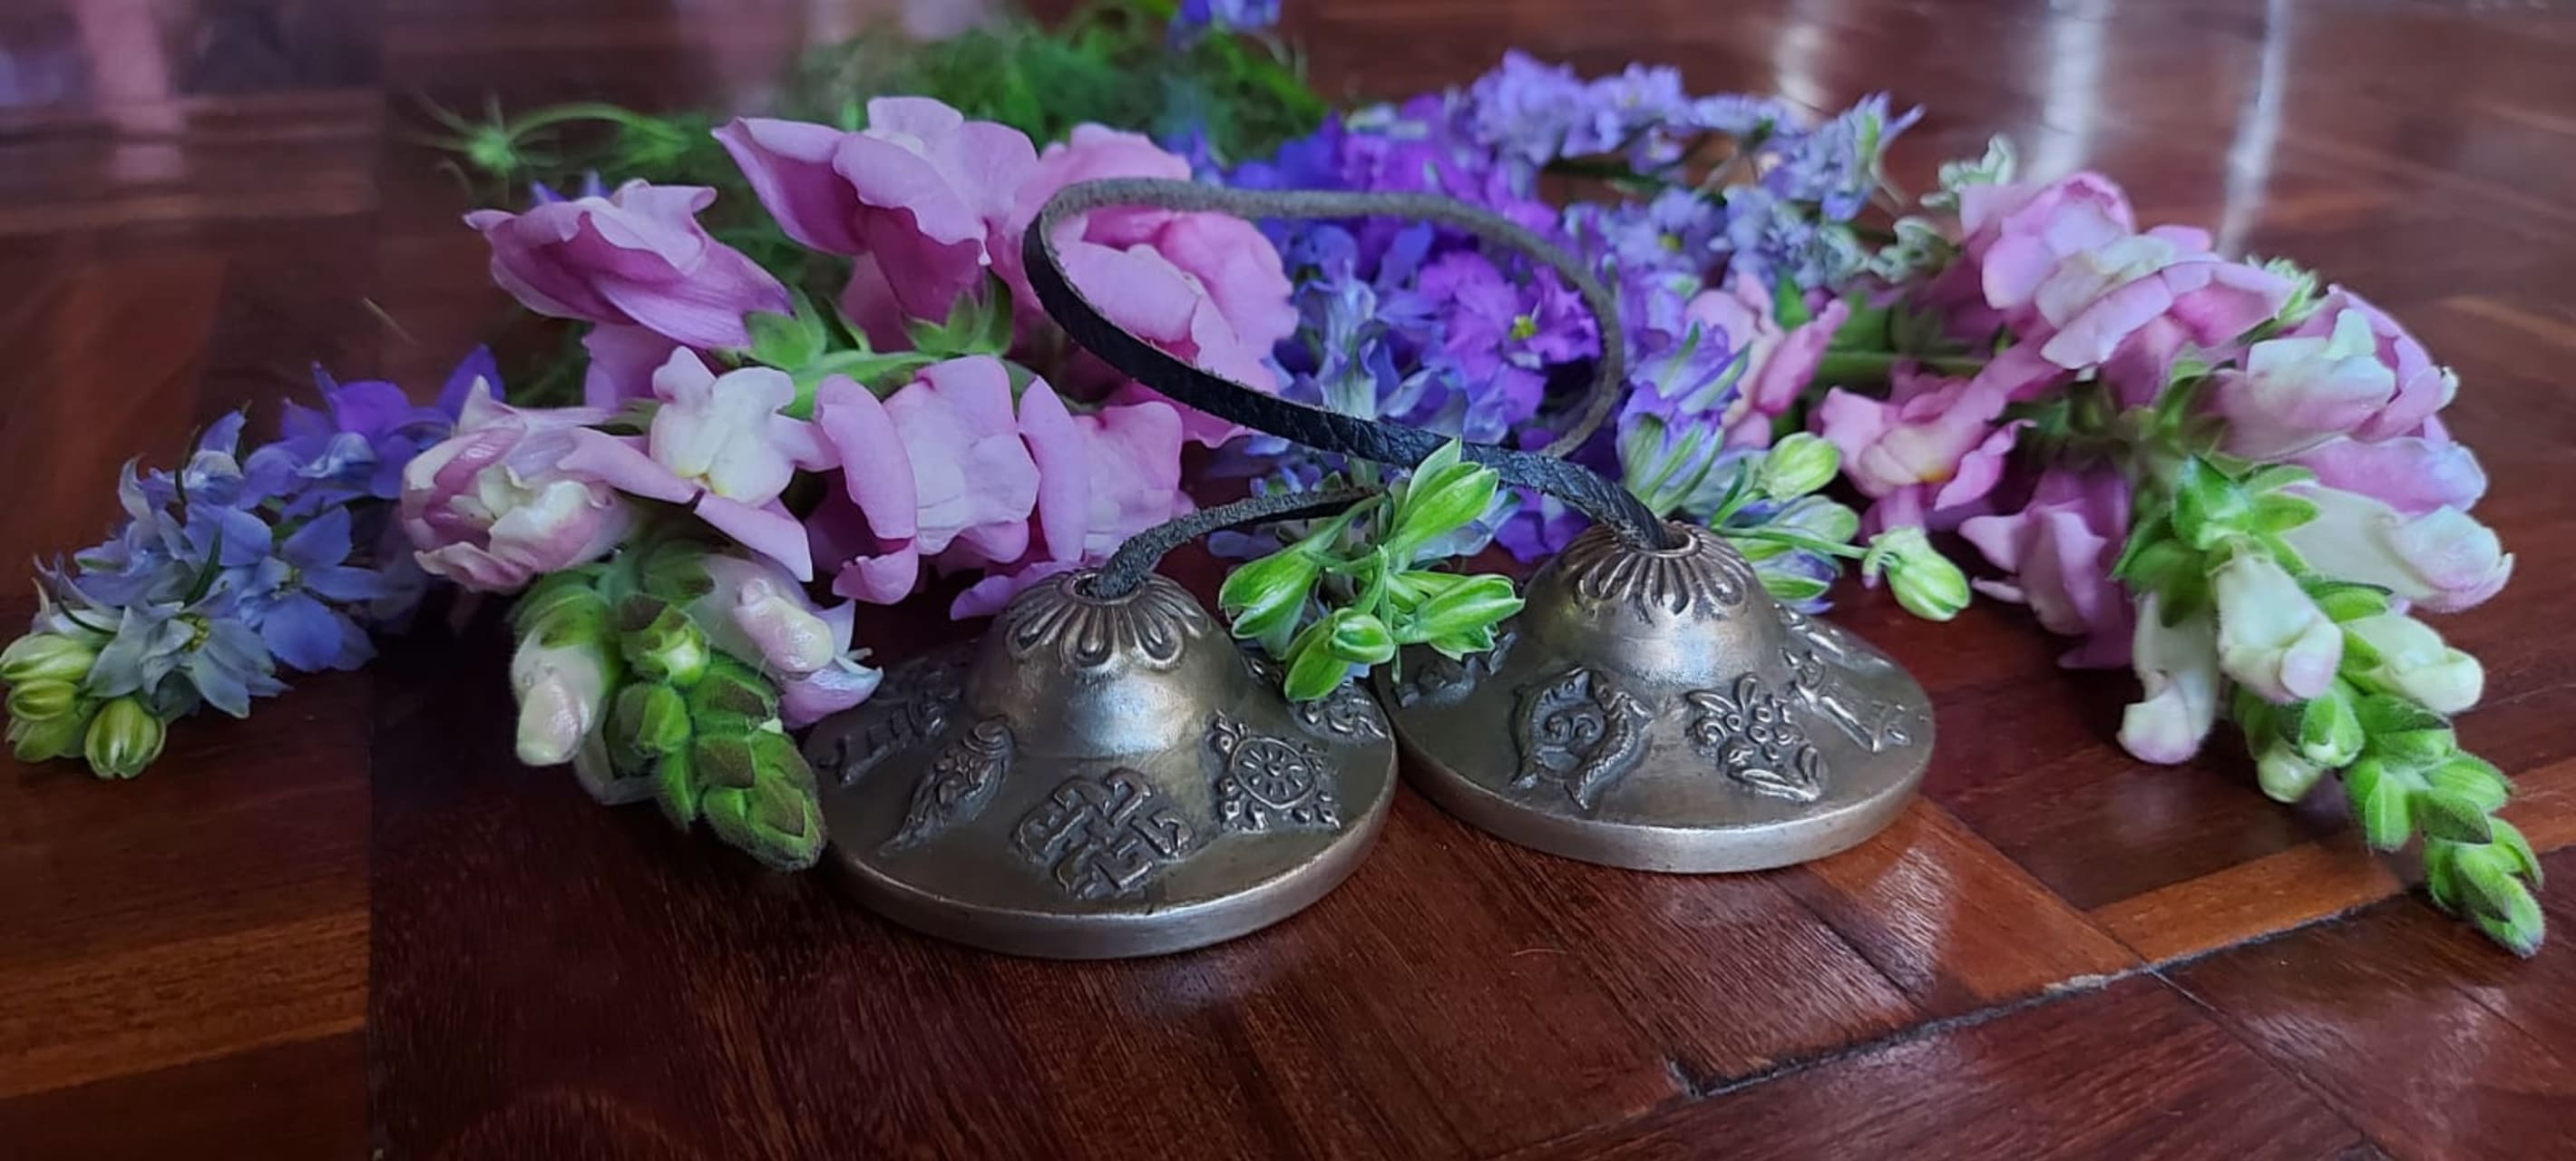 Quito - Bells Therapy and Relax your Body